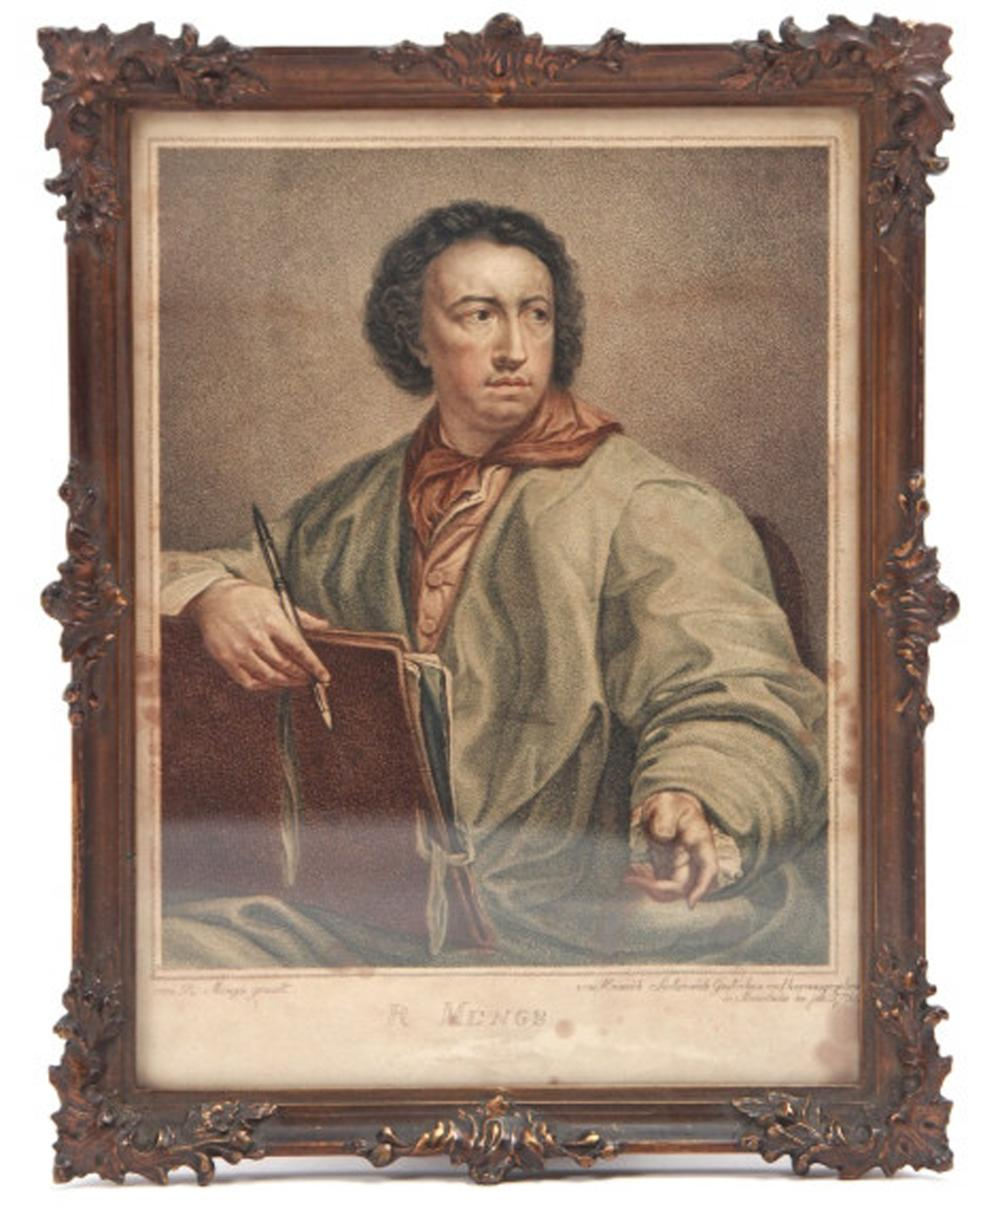 Antique c 1784 Engraving of R Mengs w Ornate Frame